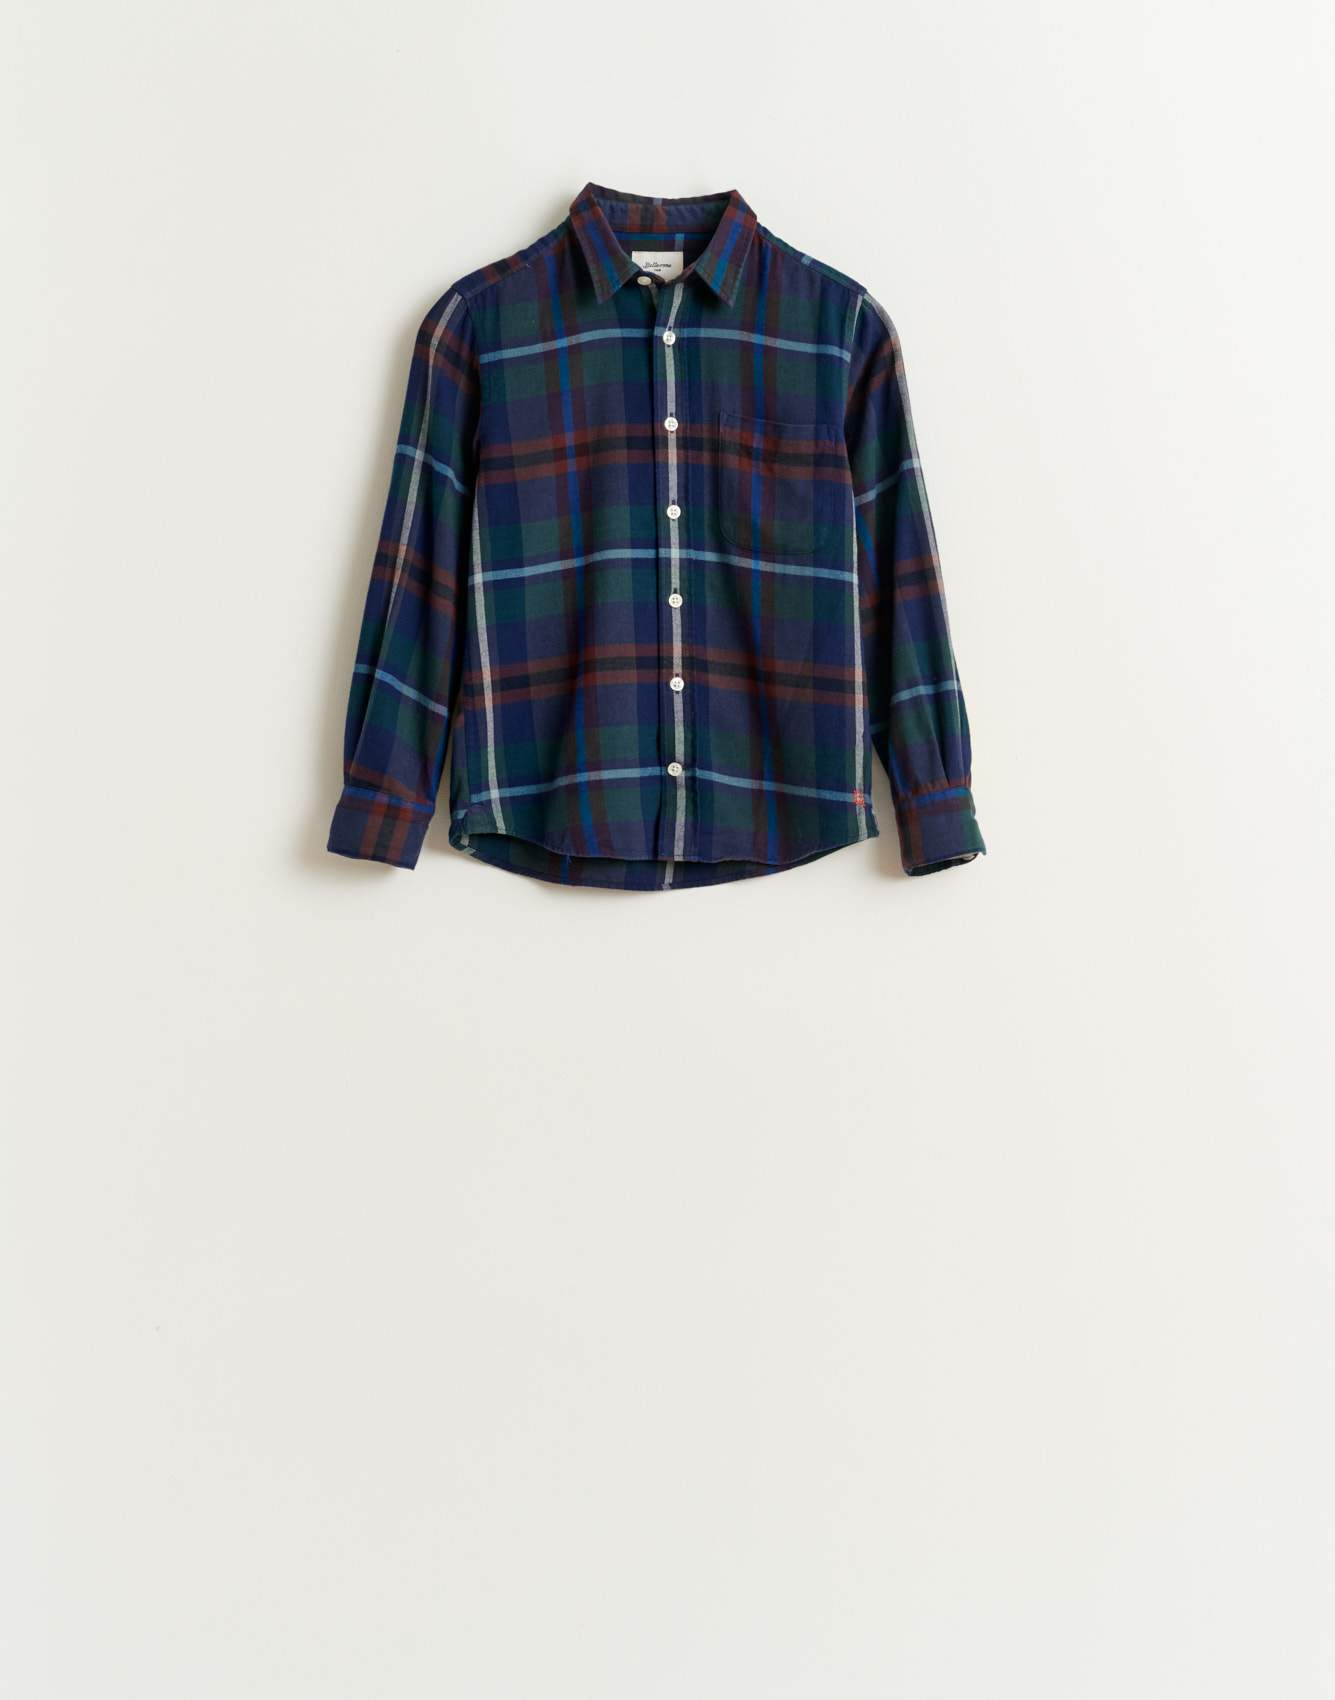 BLR_BOY_SHIRT_GASPAR_C0878_CHECK1_5000x5000.jpg